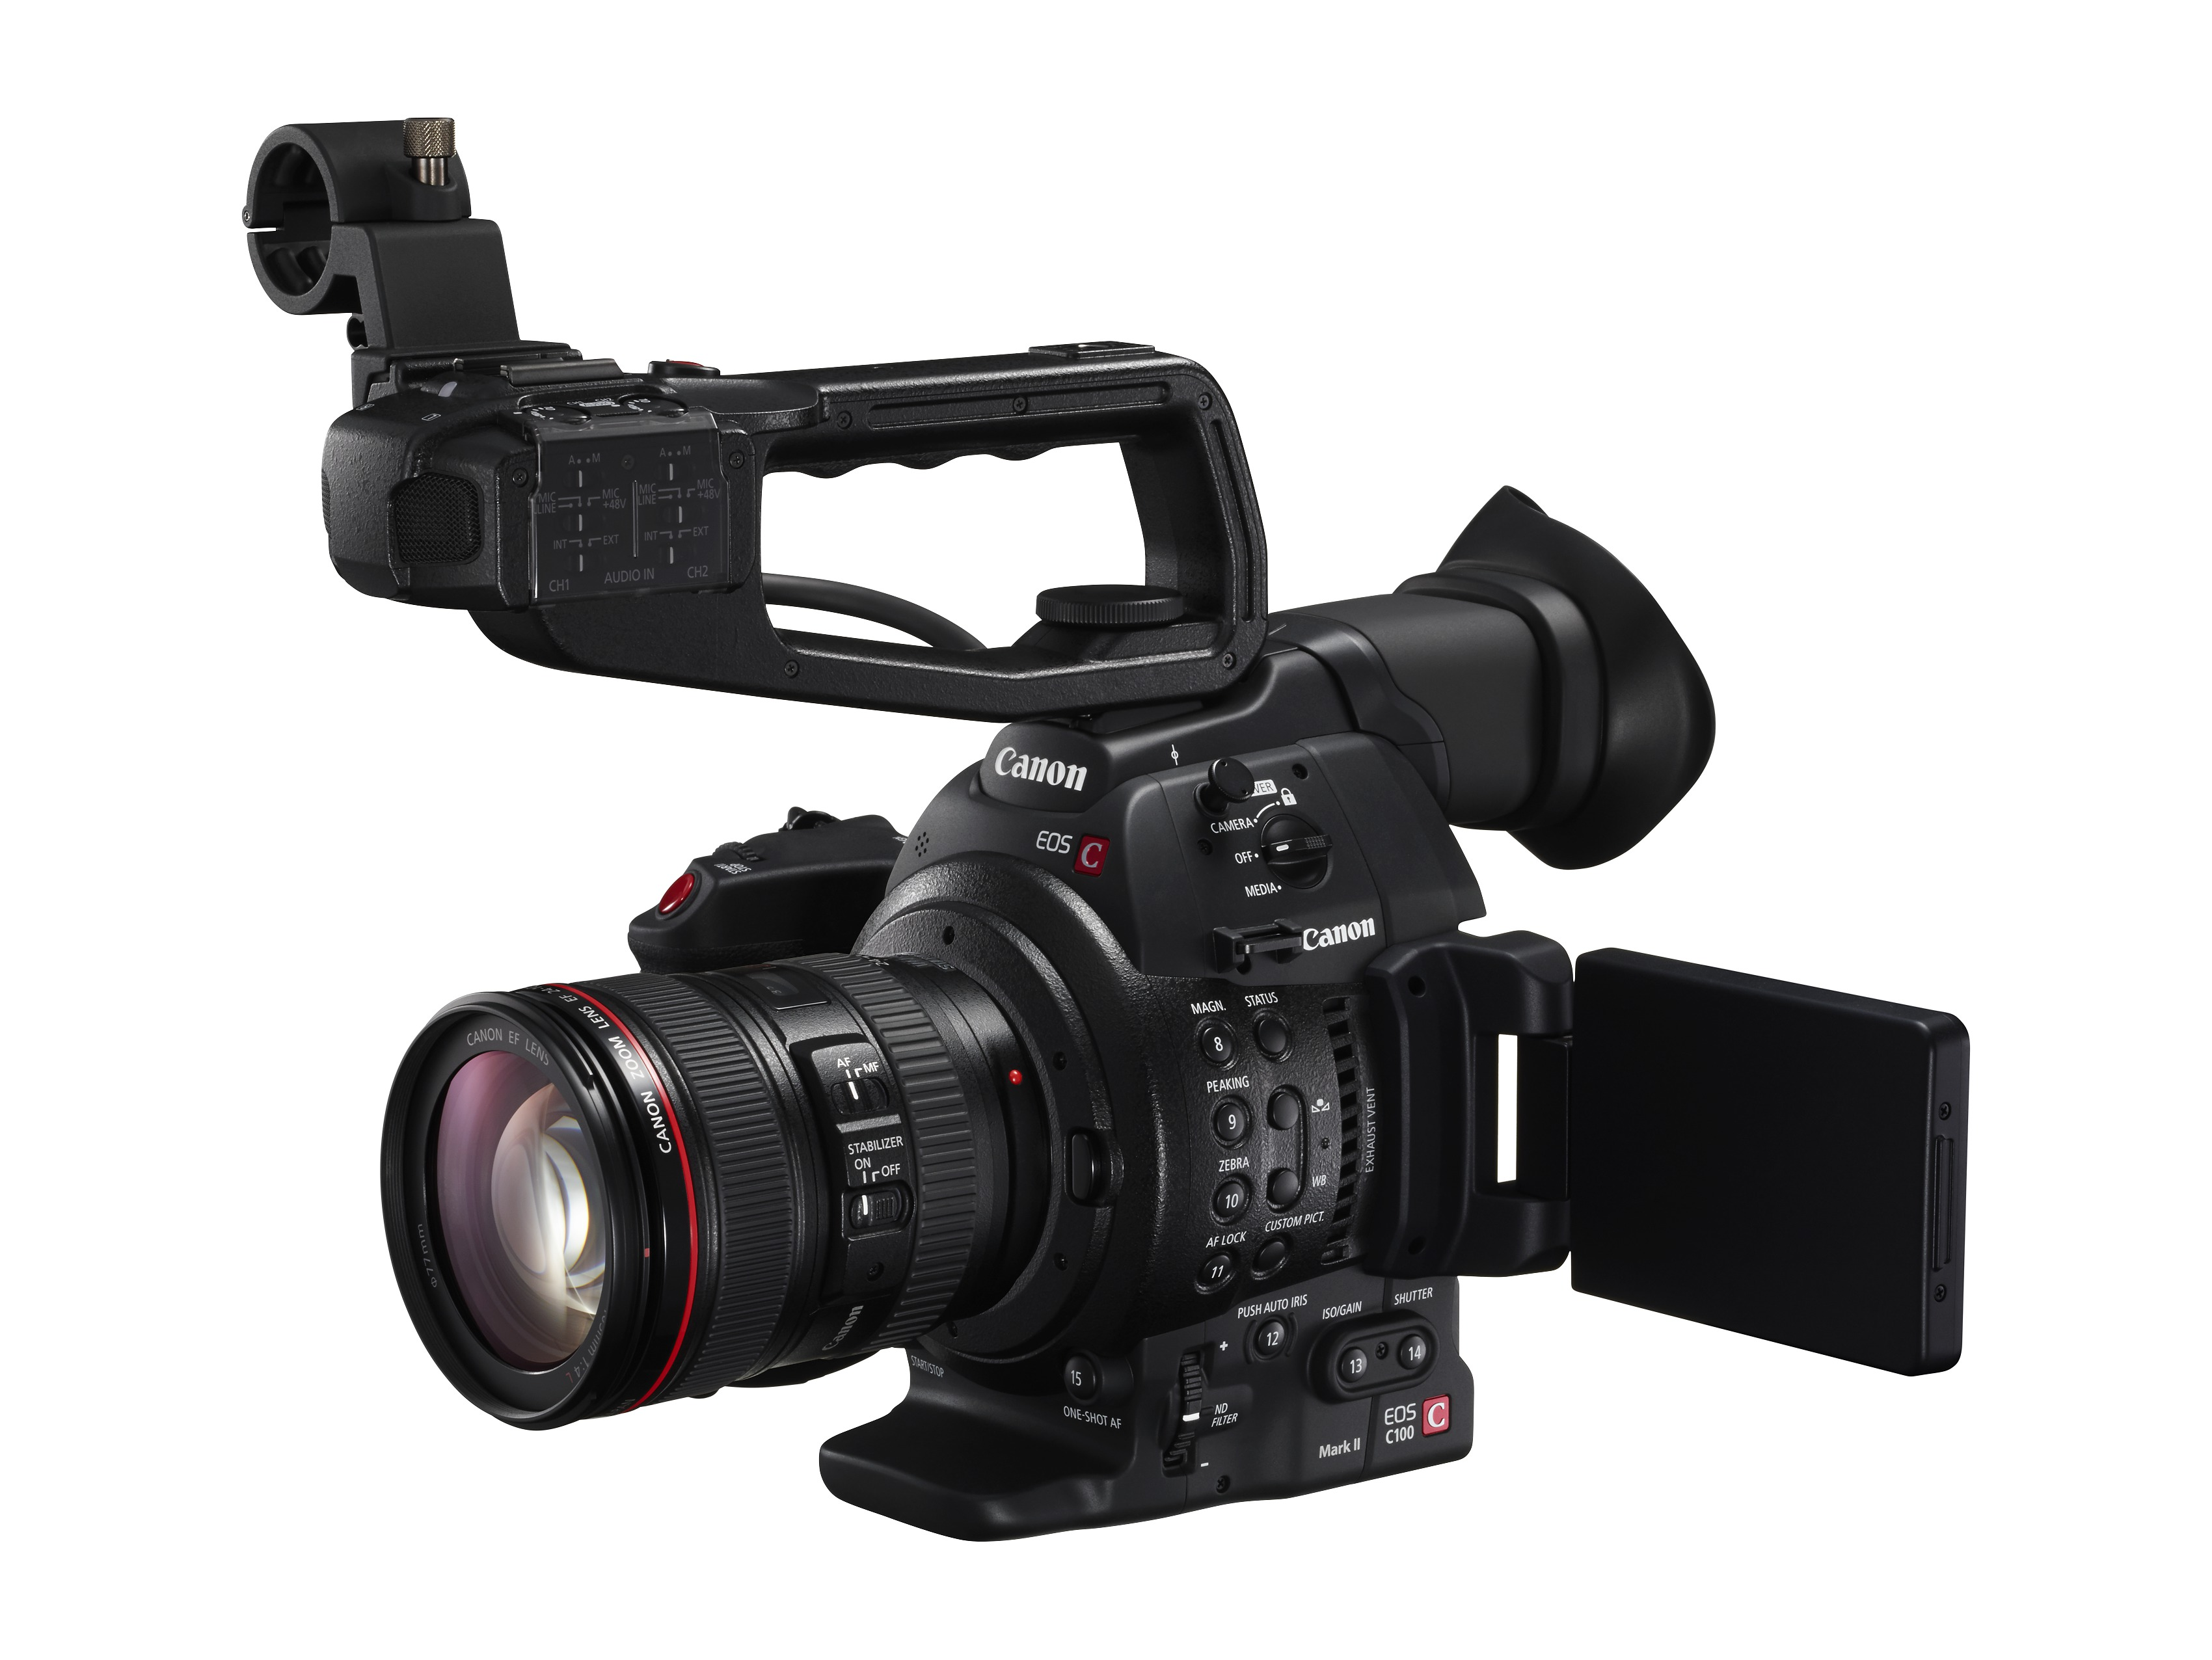 10Yetis - Online Video Company Insight - Upgrading from Canon DSLRs to the C100